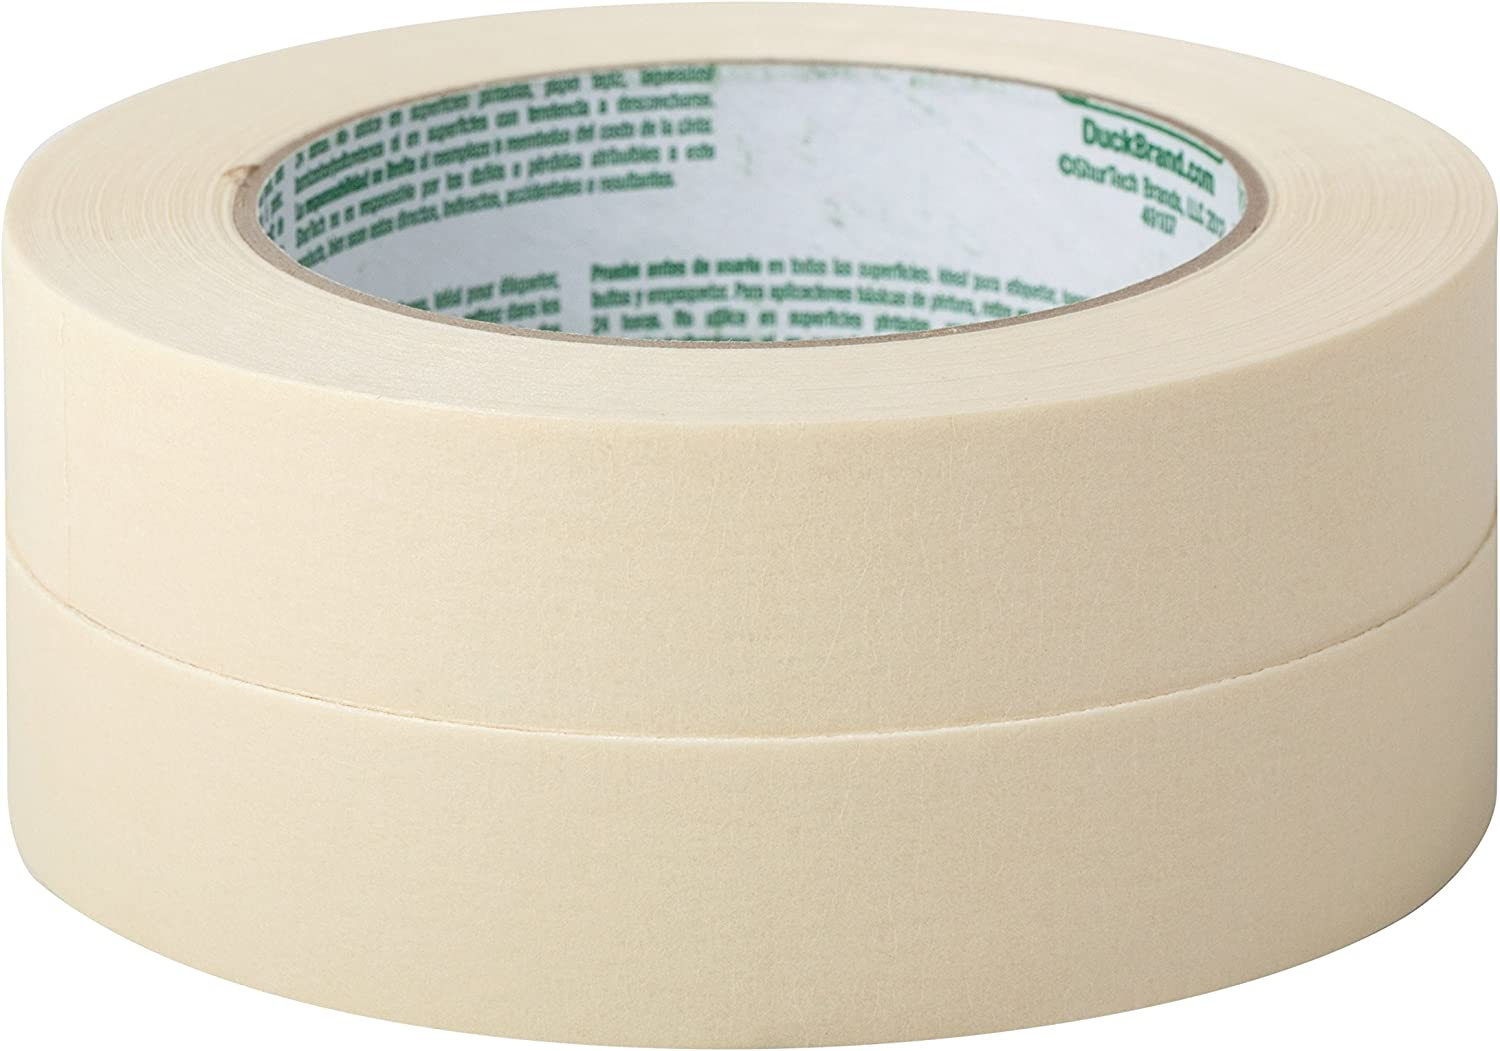 Duck Brand 286655 General Purpose Masking Tape 0.94 Inches by 60 Yards 36 Rolls per Pack Beige